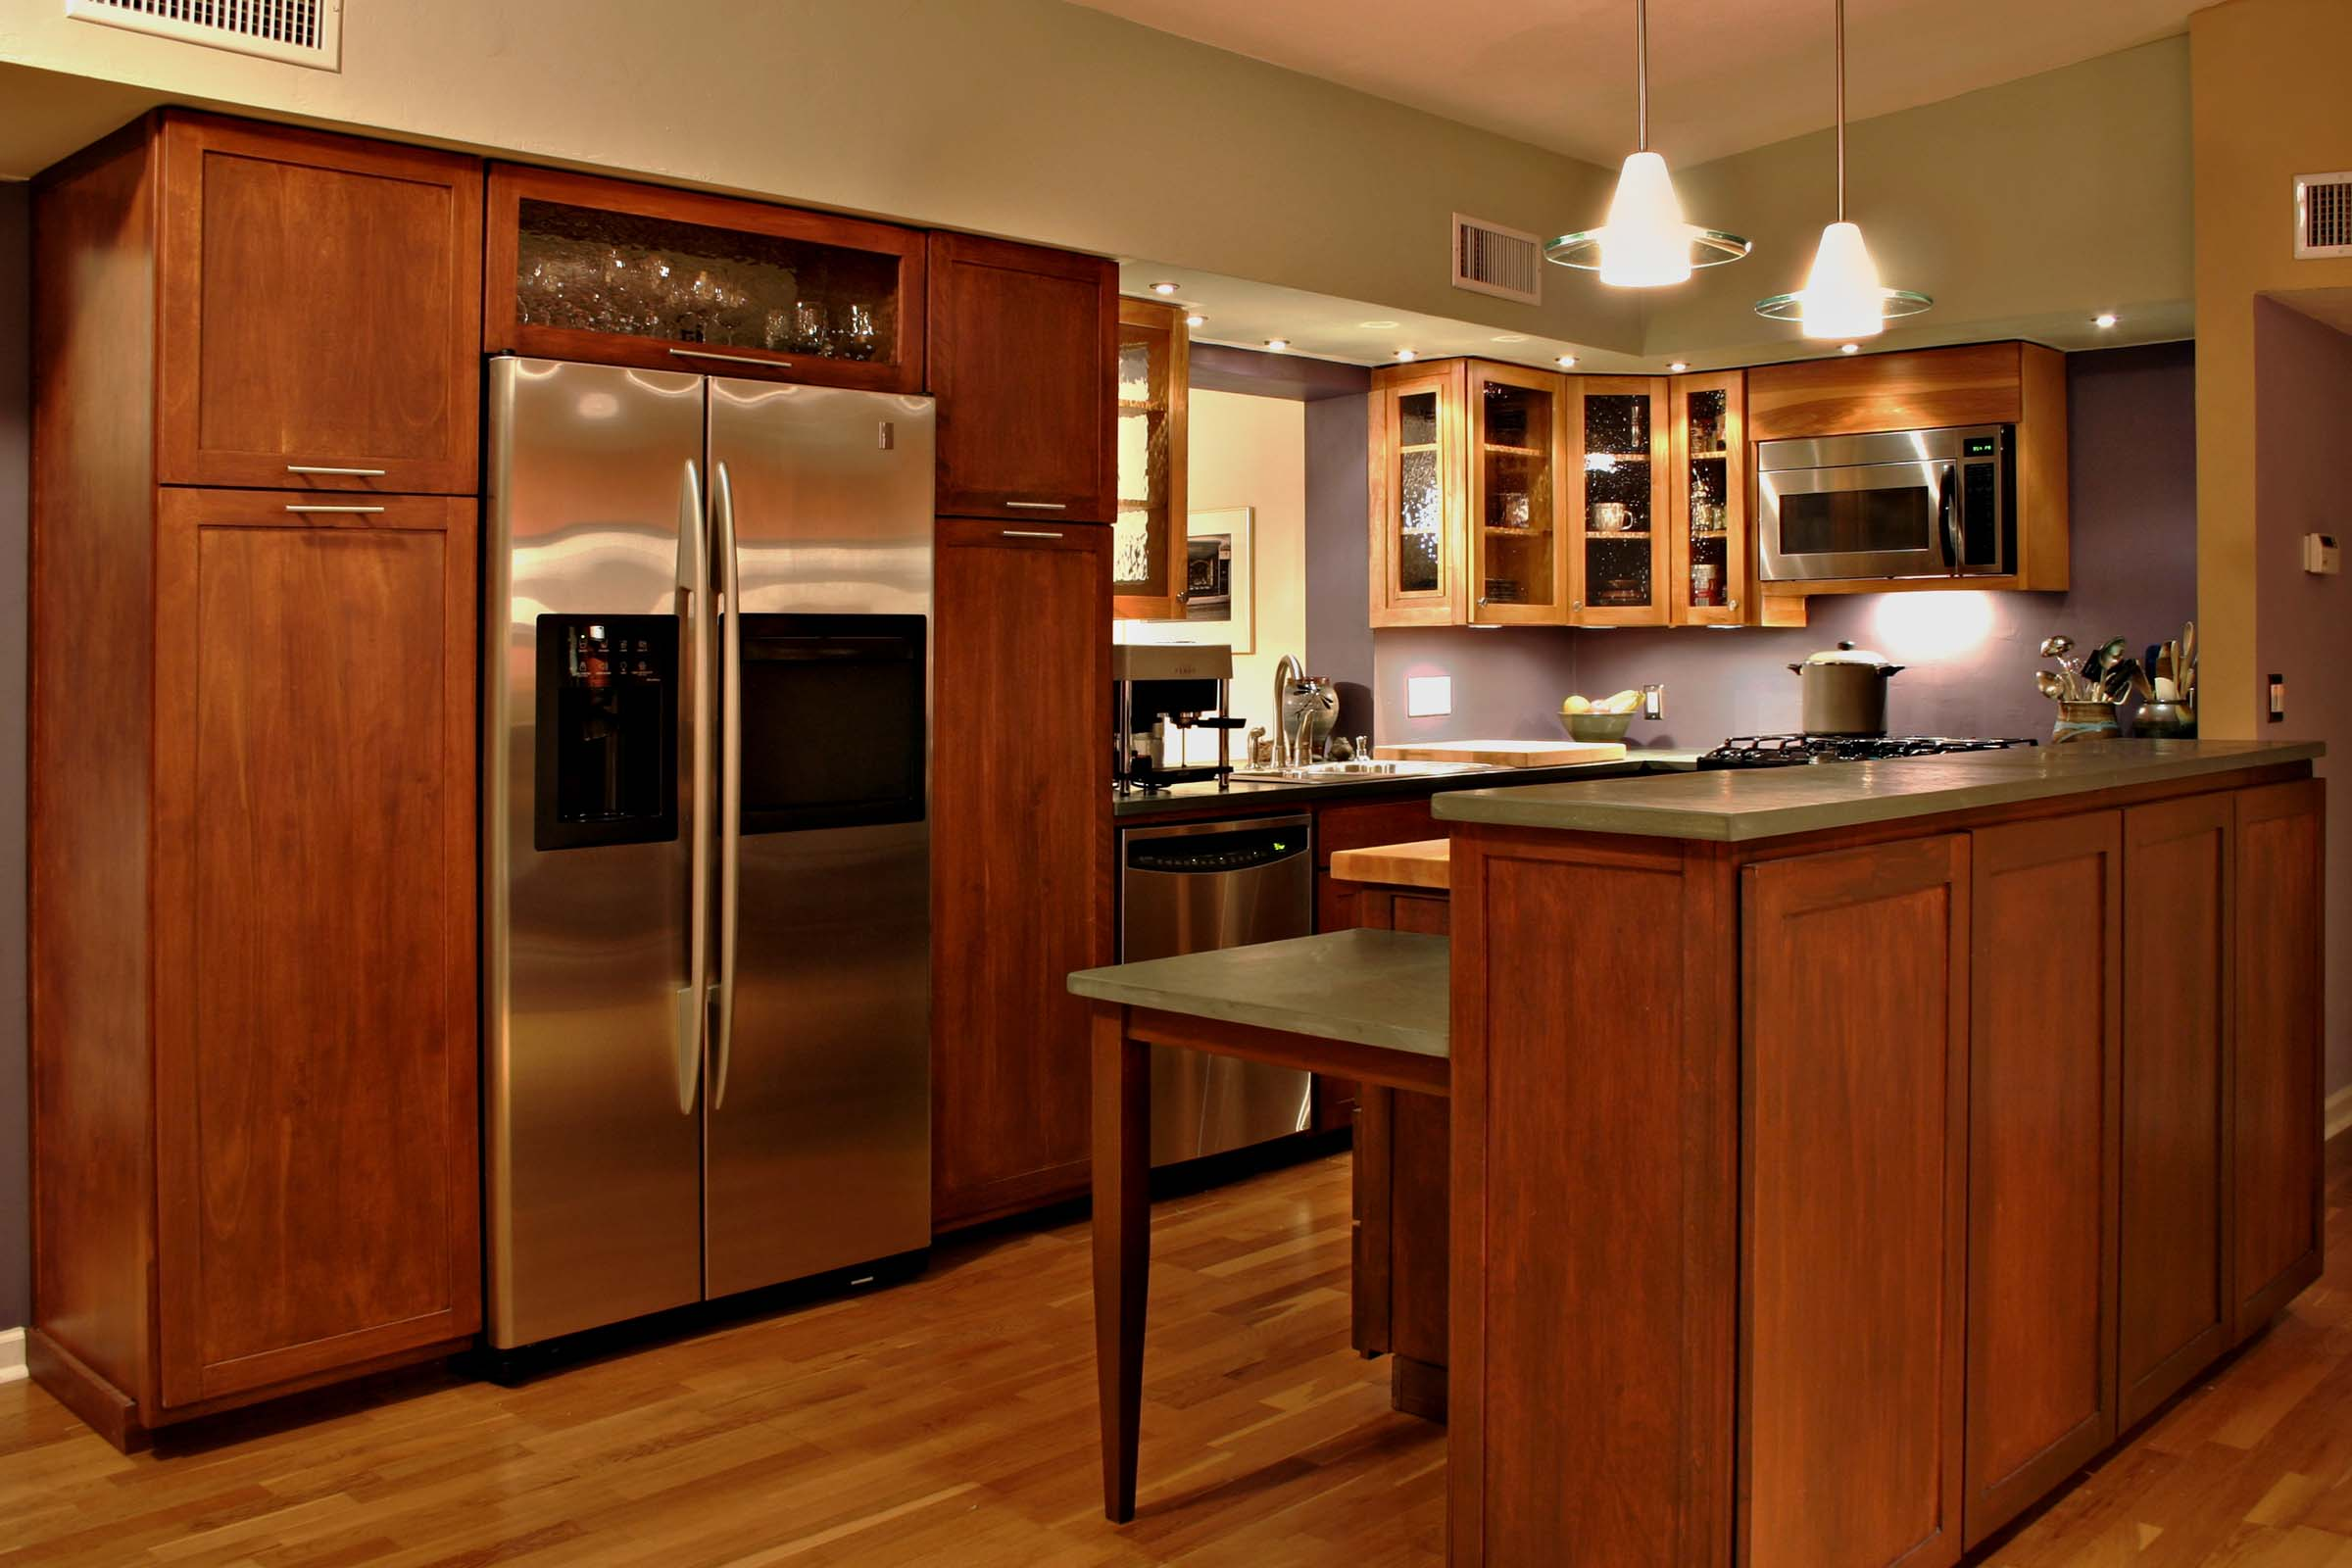 Uncategorized Kitchen Appliances Richmond Va remodeling and renovation services in richmond va a stunning kitchen remodel